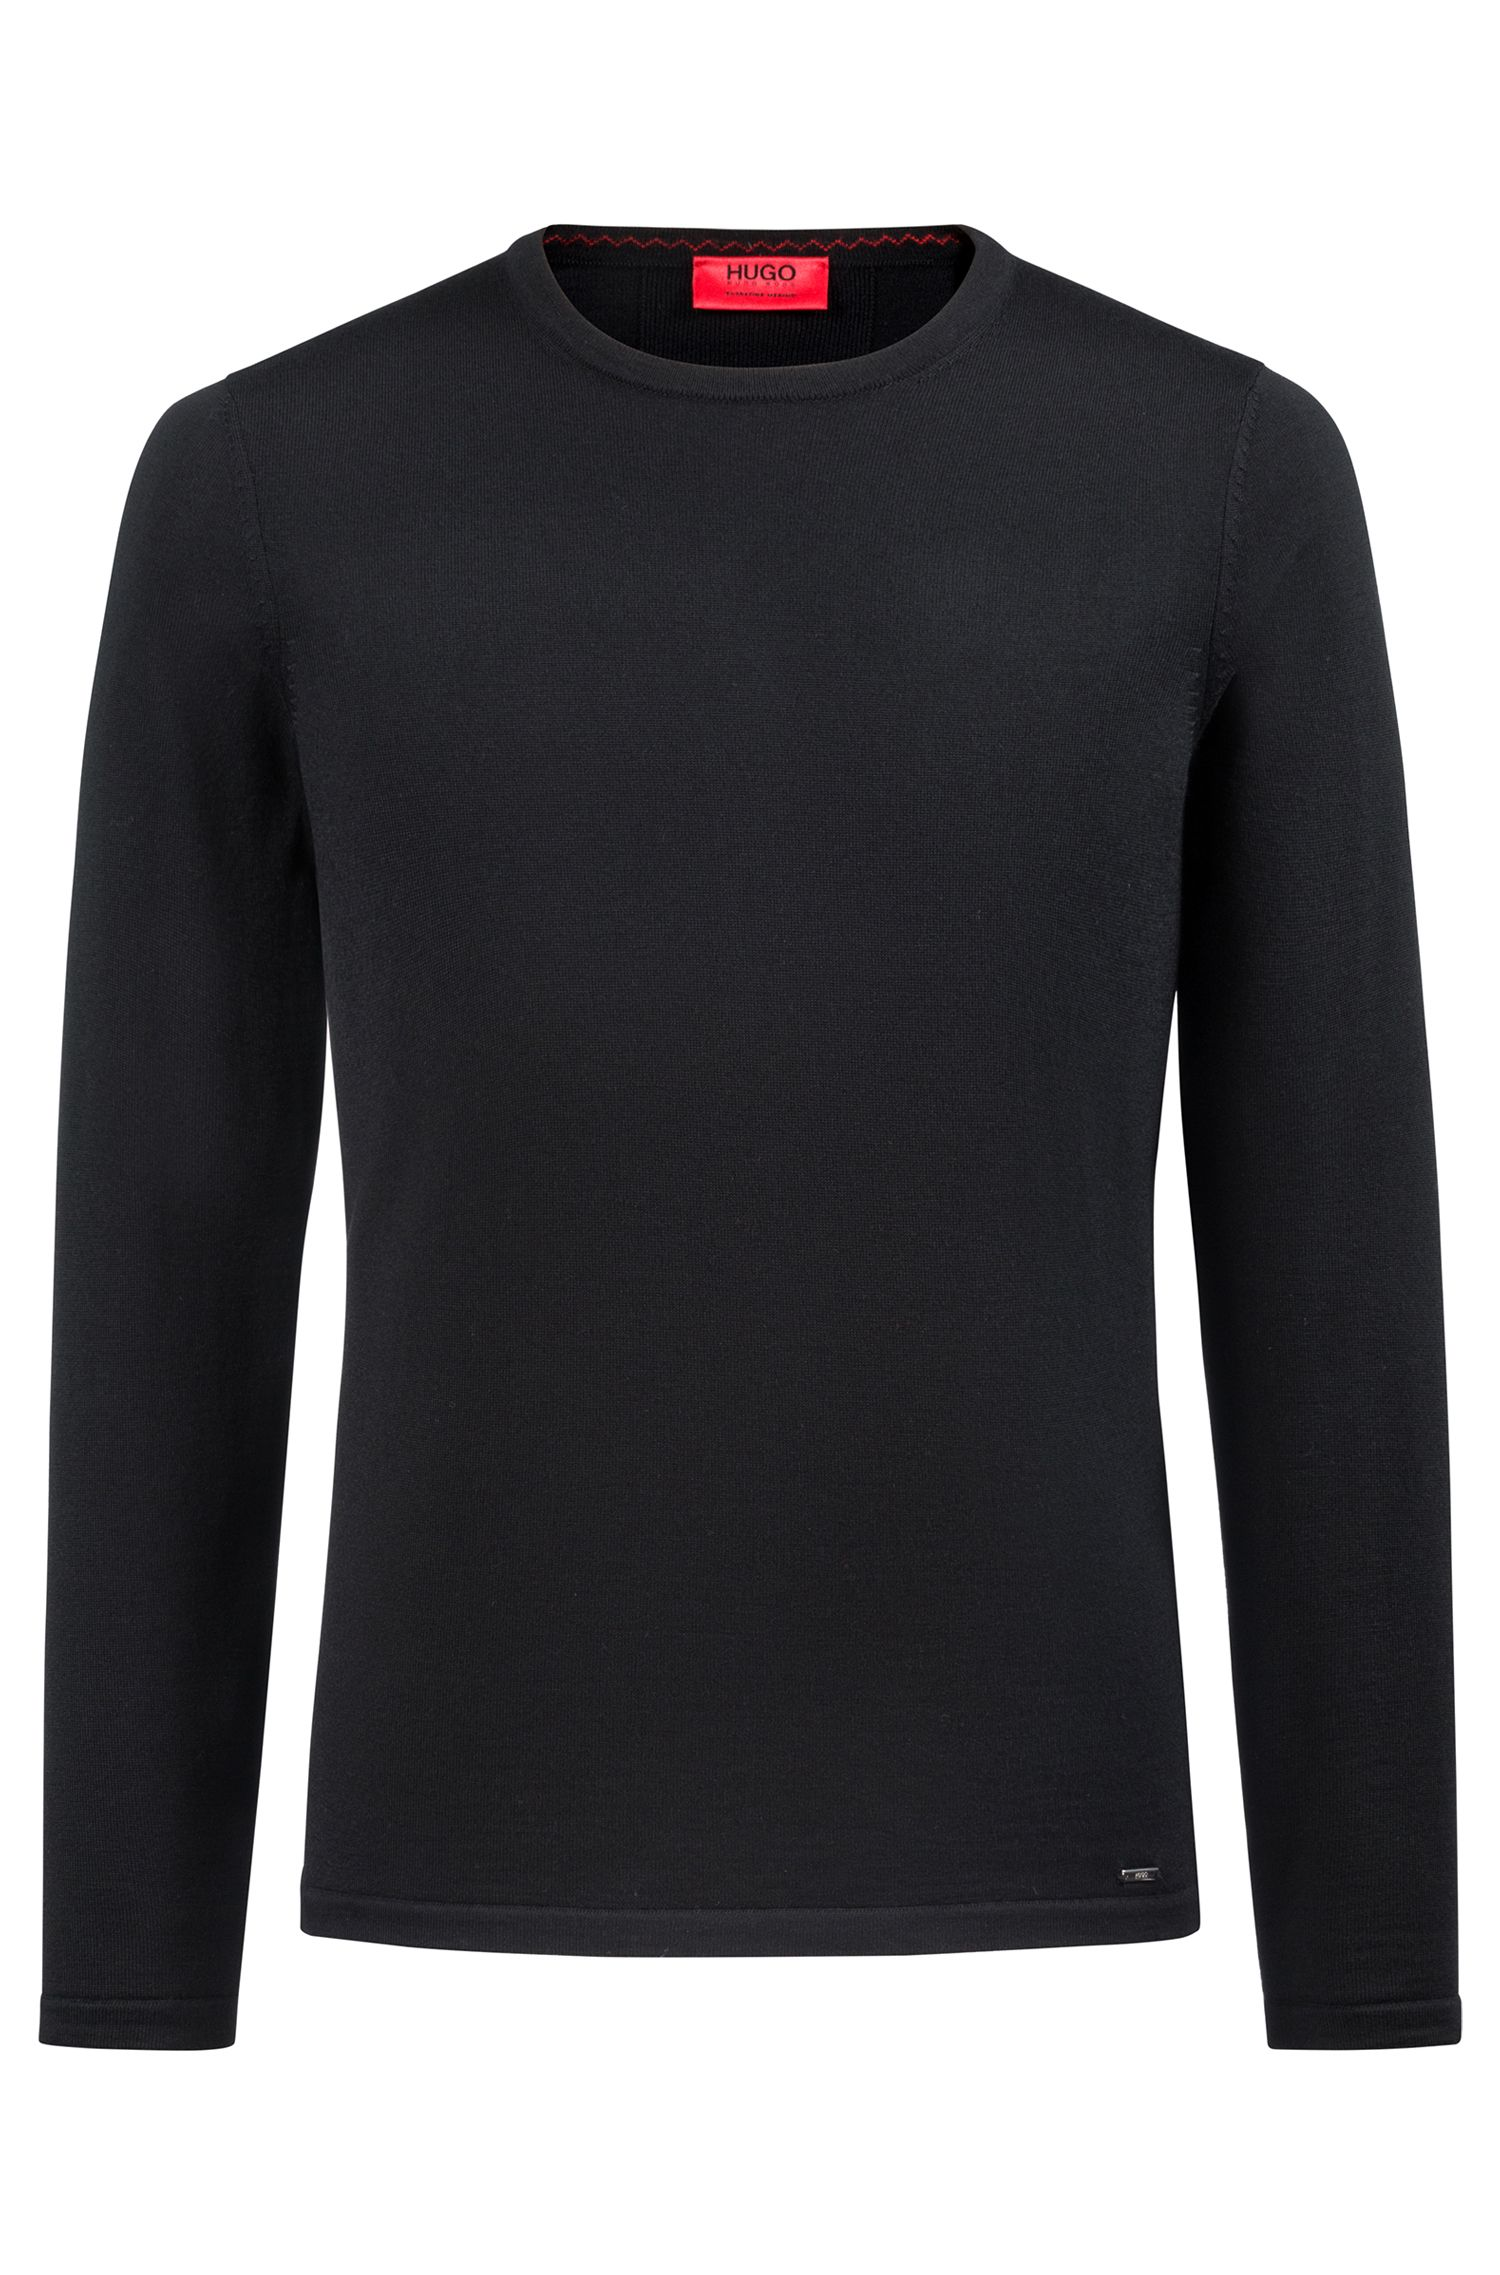 Crew-neck sweater in Merino wool, Black